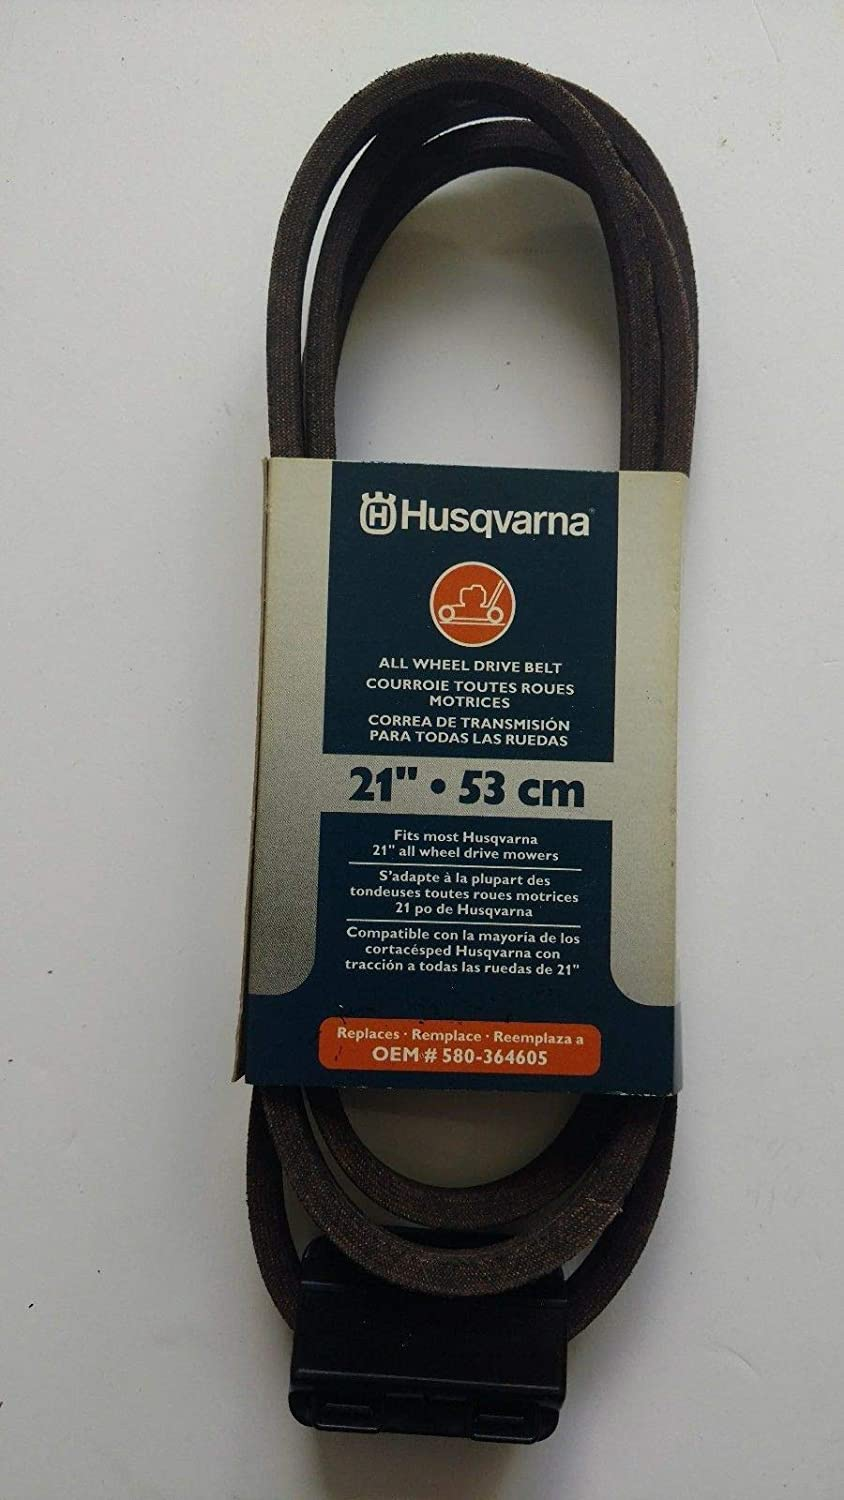 Amazon.com : Husqvarna 21-in Drive Belt for All Wheel Drive Mowers : Garden & Outdoor